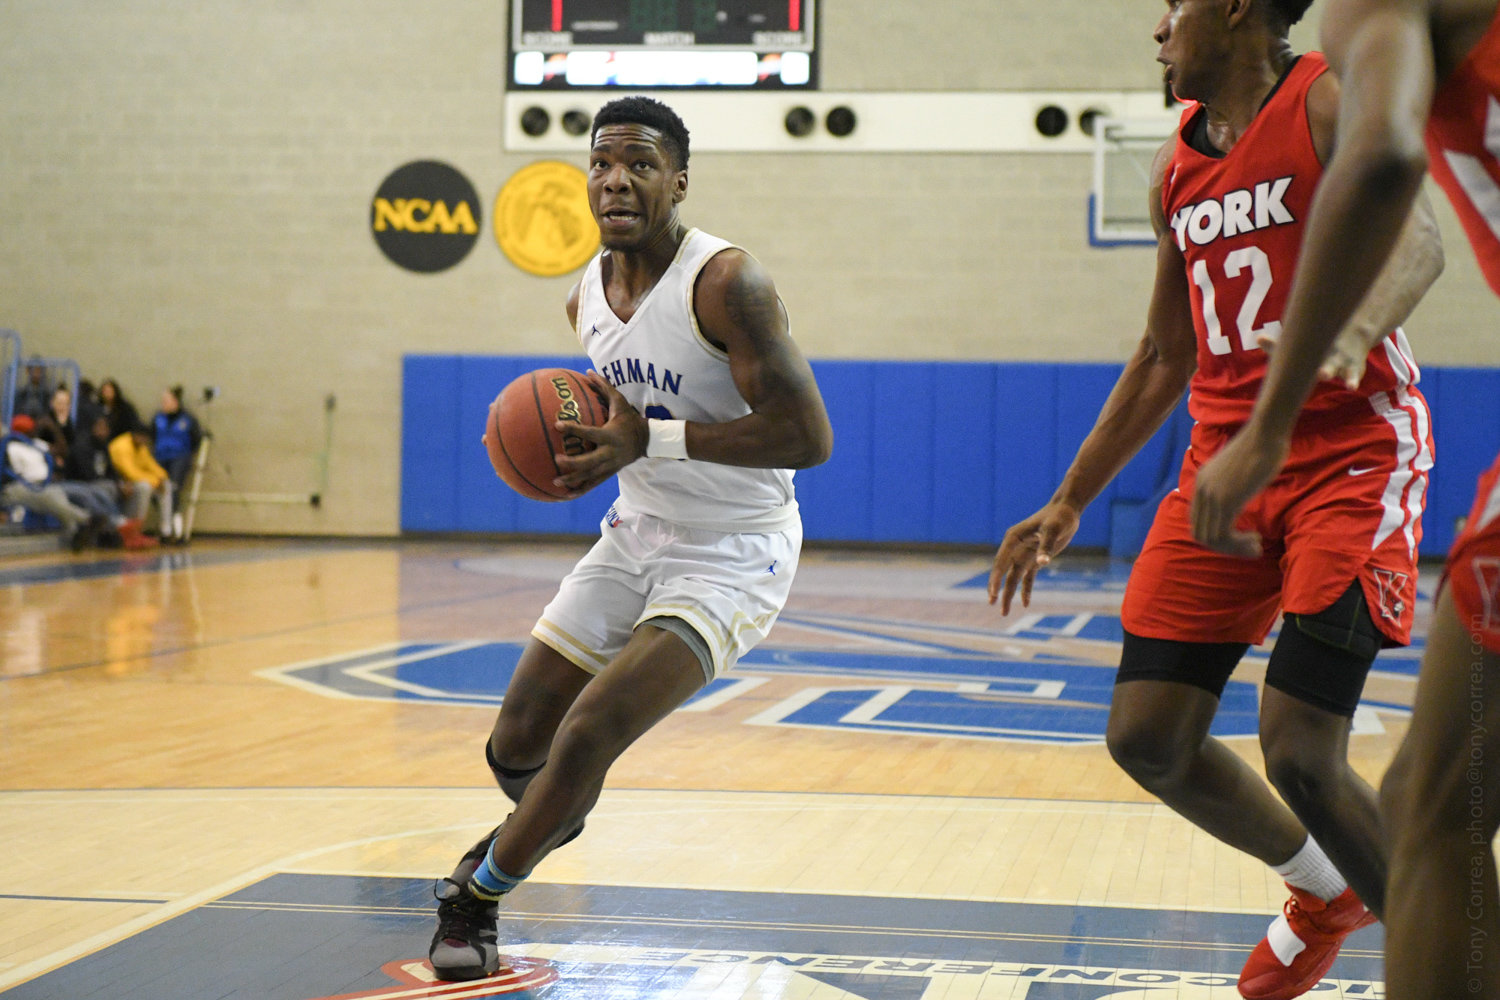 Lehman College junior guard Isaiah Geathers slices through a couple of York defenders during the Lightning's 91-64 victory last Friday night.